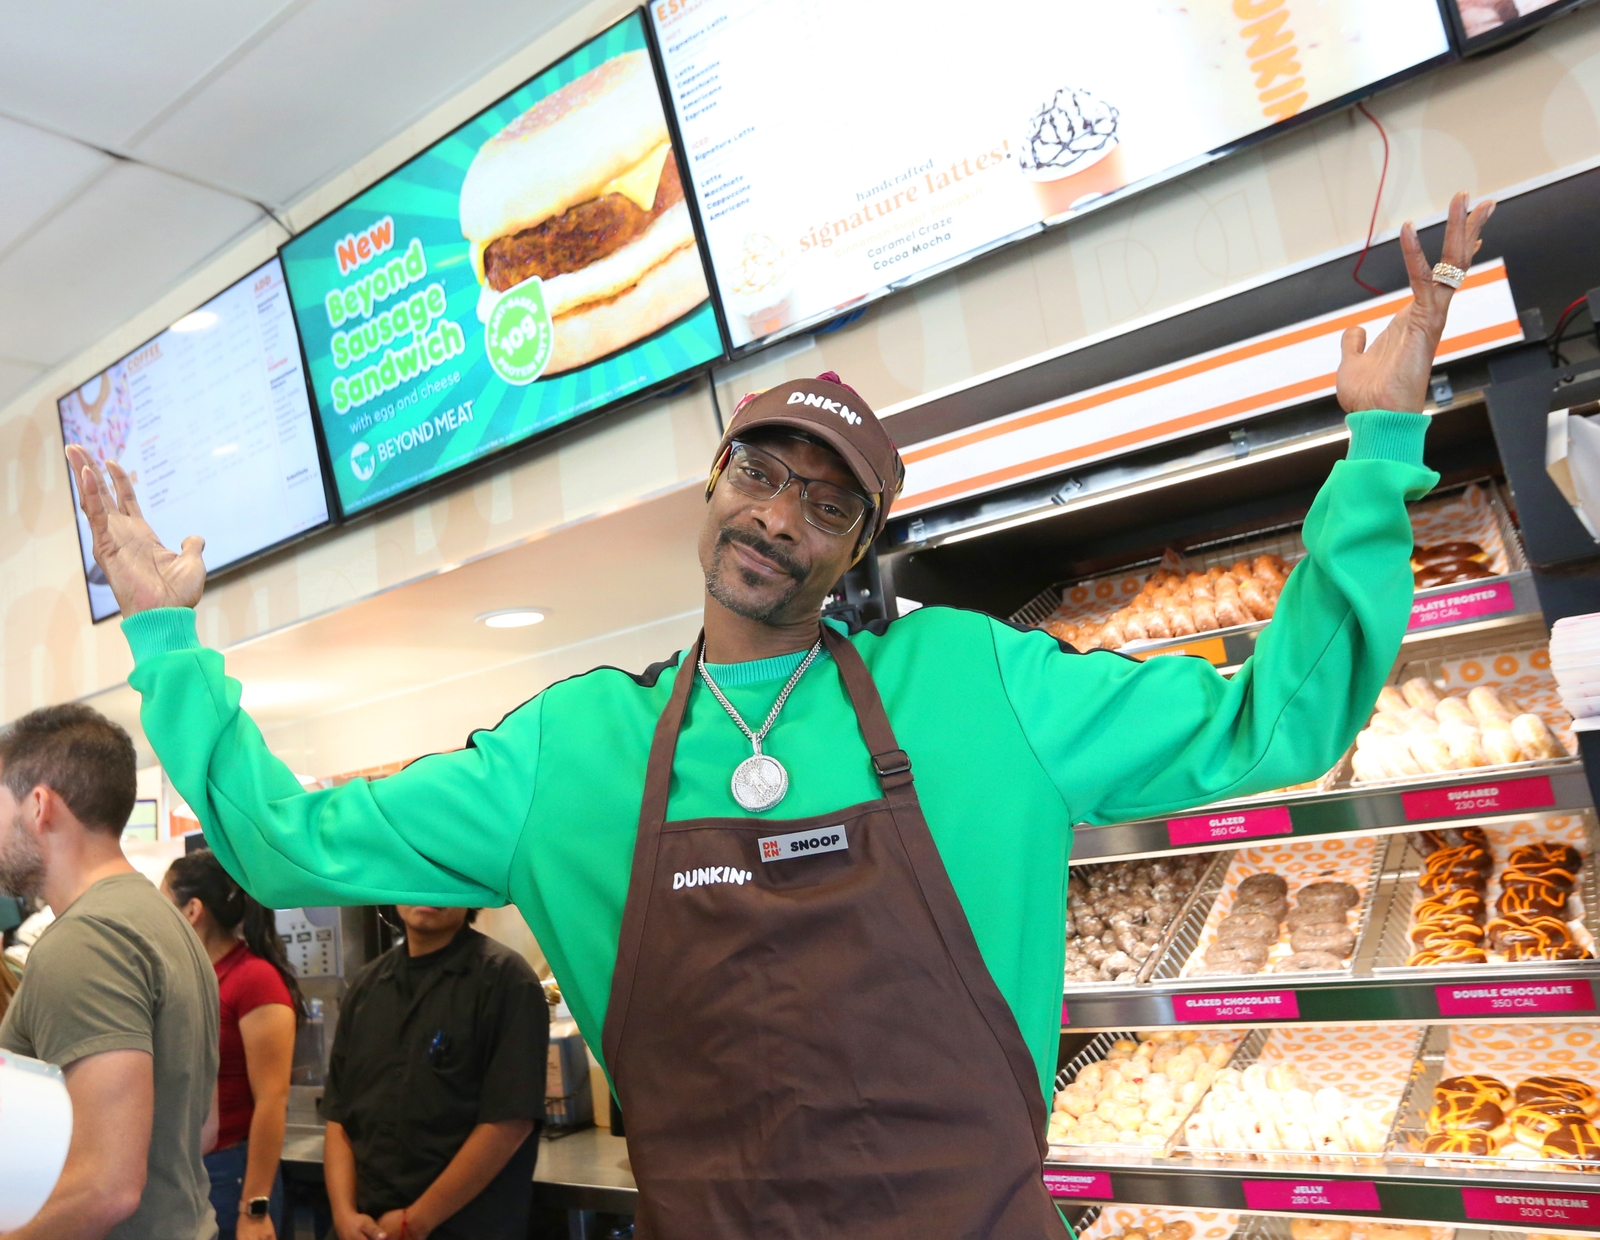 Introducing our Dunkin' Employee of the Month: Snoop Dogg